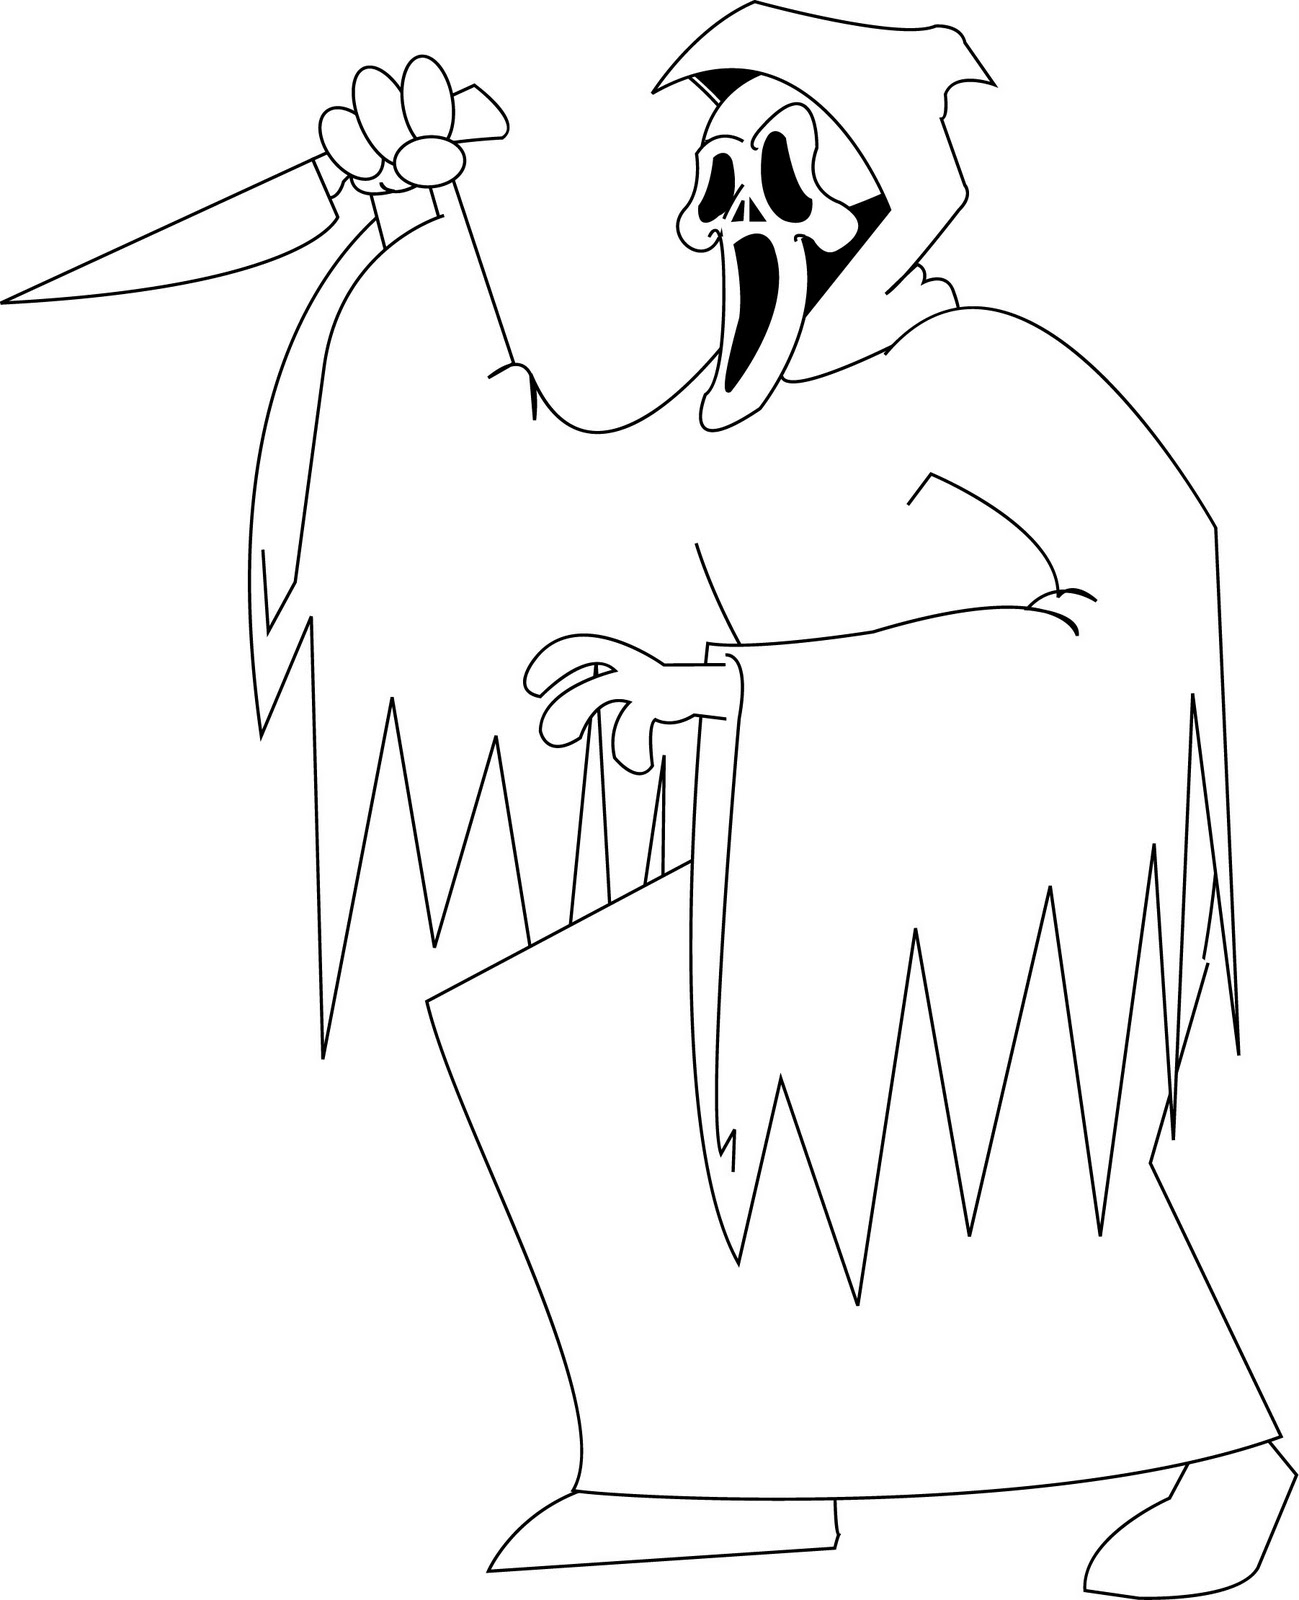 michael myers coloring pages - photo#20